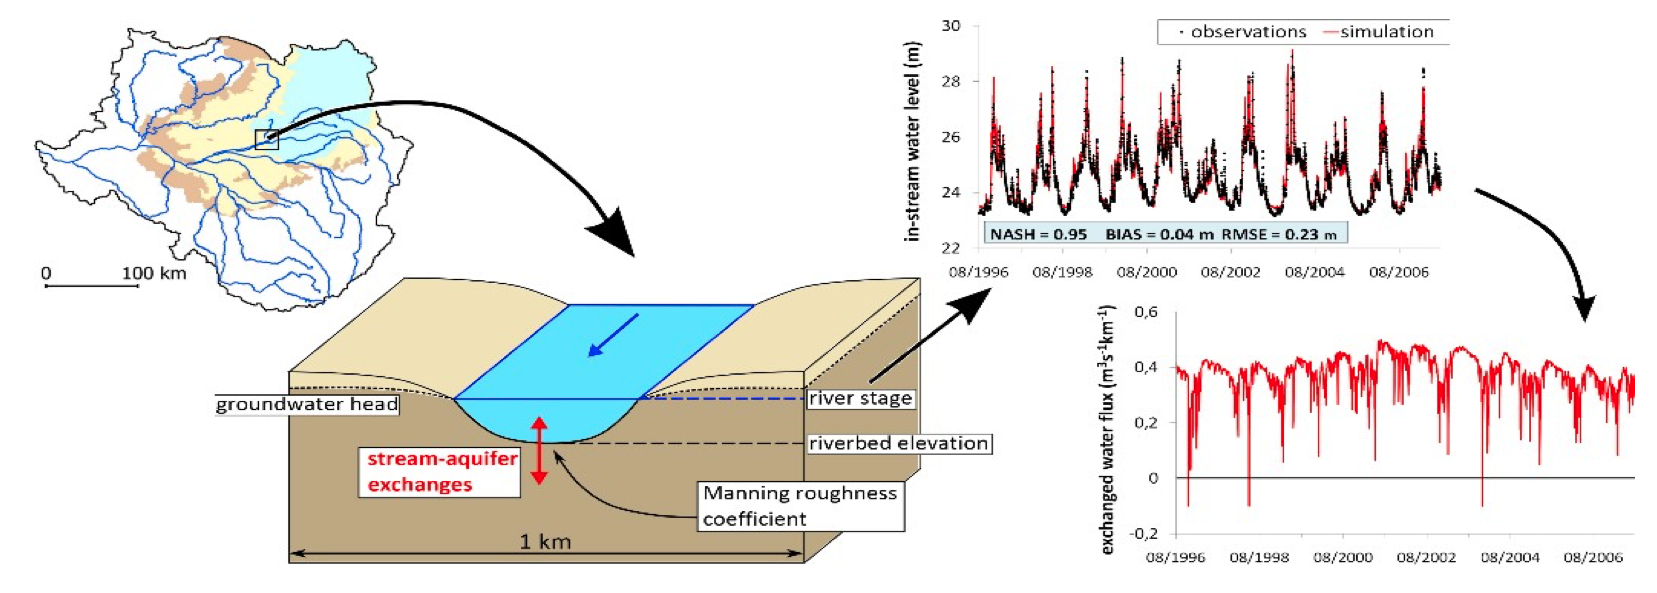 Influence of water level fluctuations on river-aquifer exchanges at the Loire basin scale